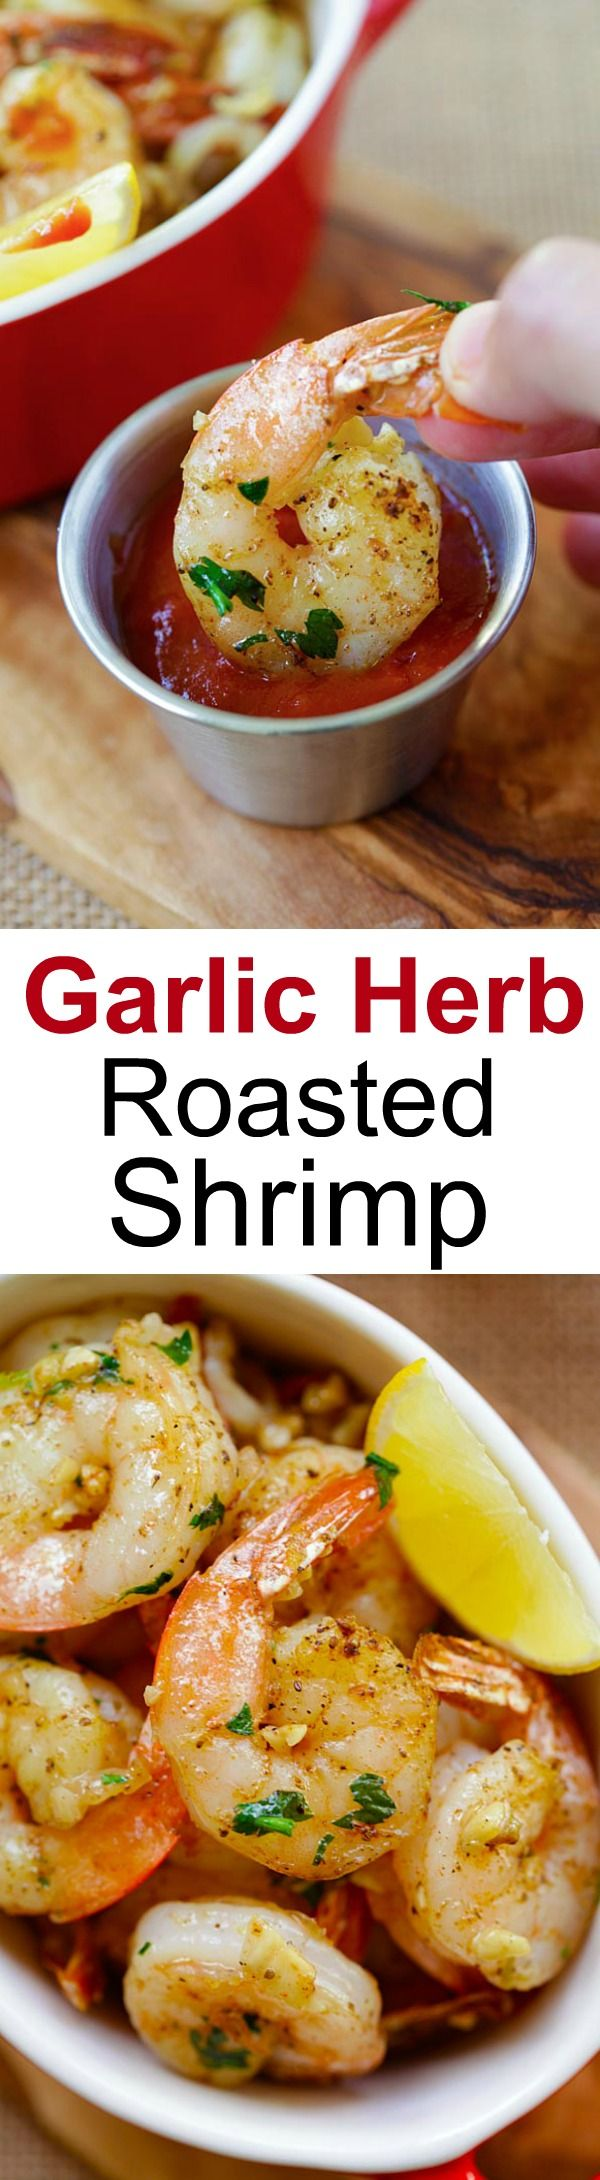 Garlic Herb Roasted Shrimp – easiest and best roasted shrimp with butter, garlic, herb and serve with cocktail sauce. Takes 15 mins   rasamalaysia.com